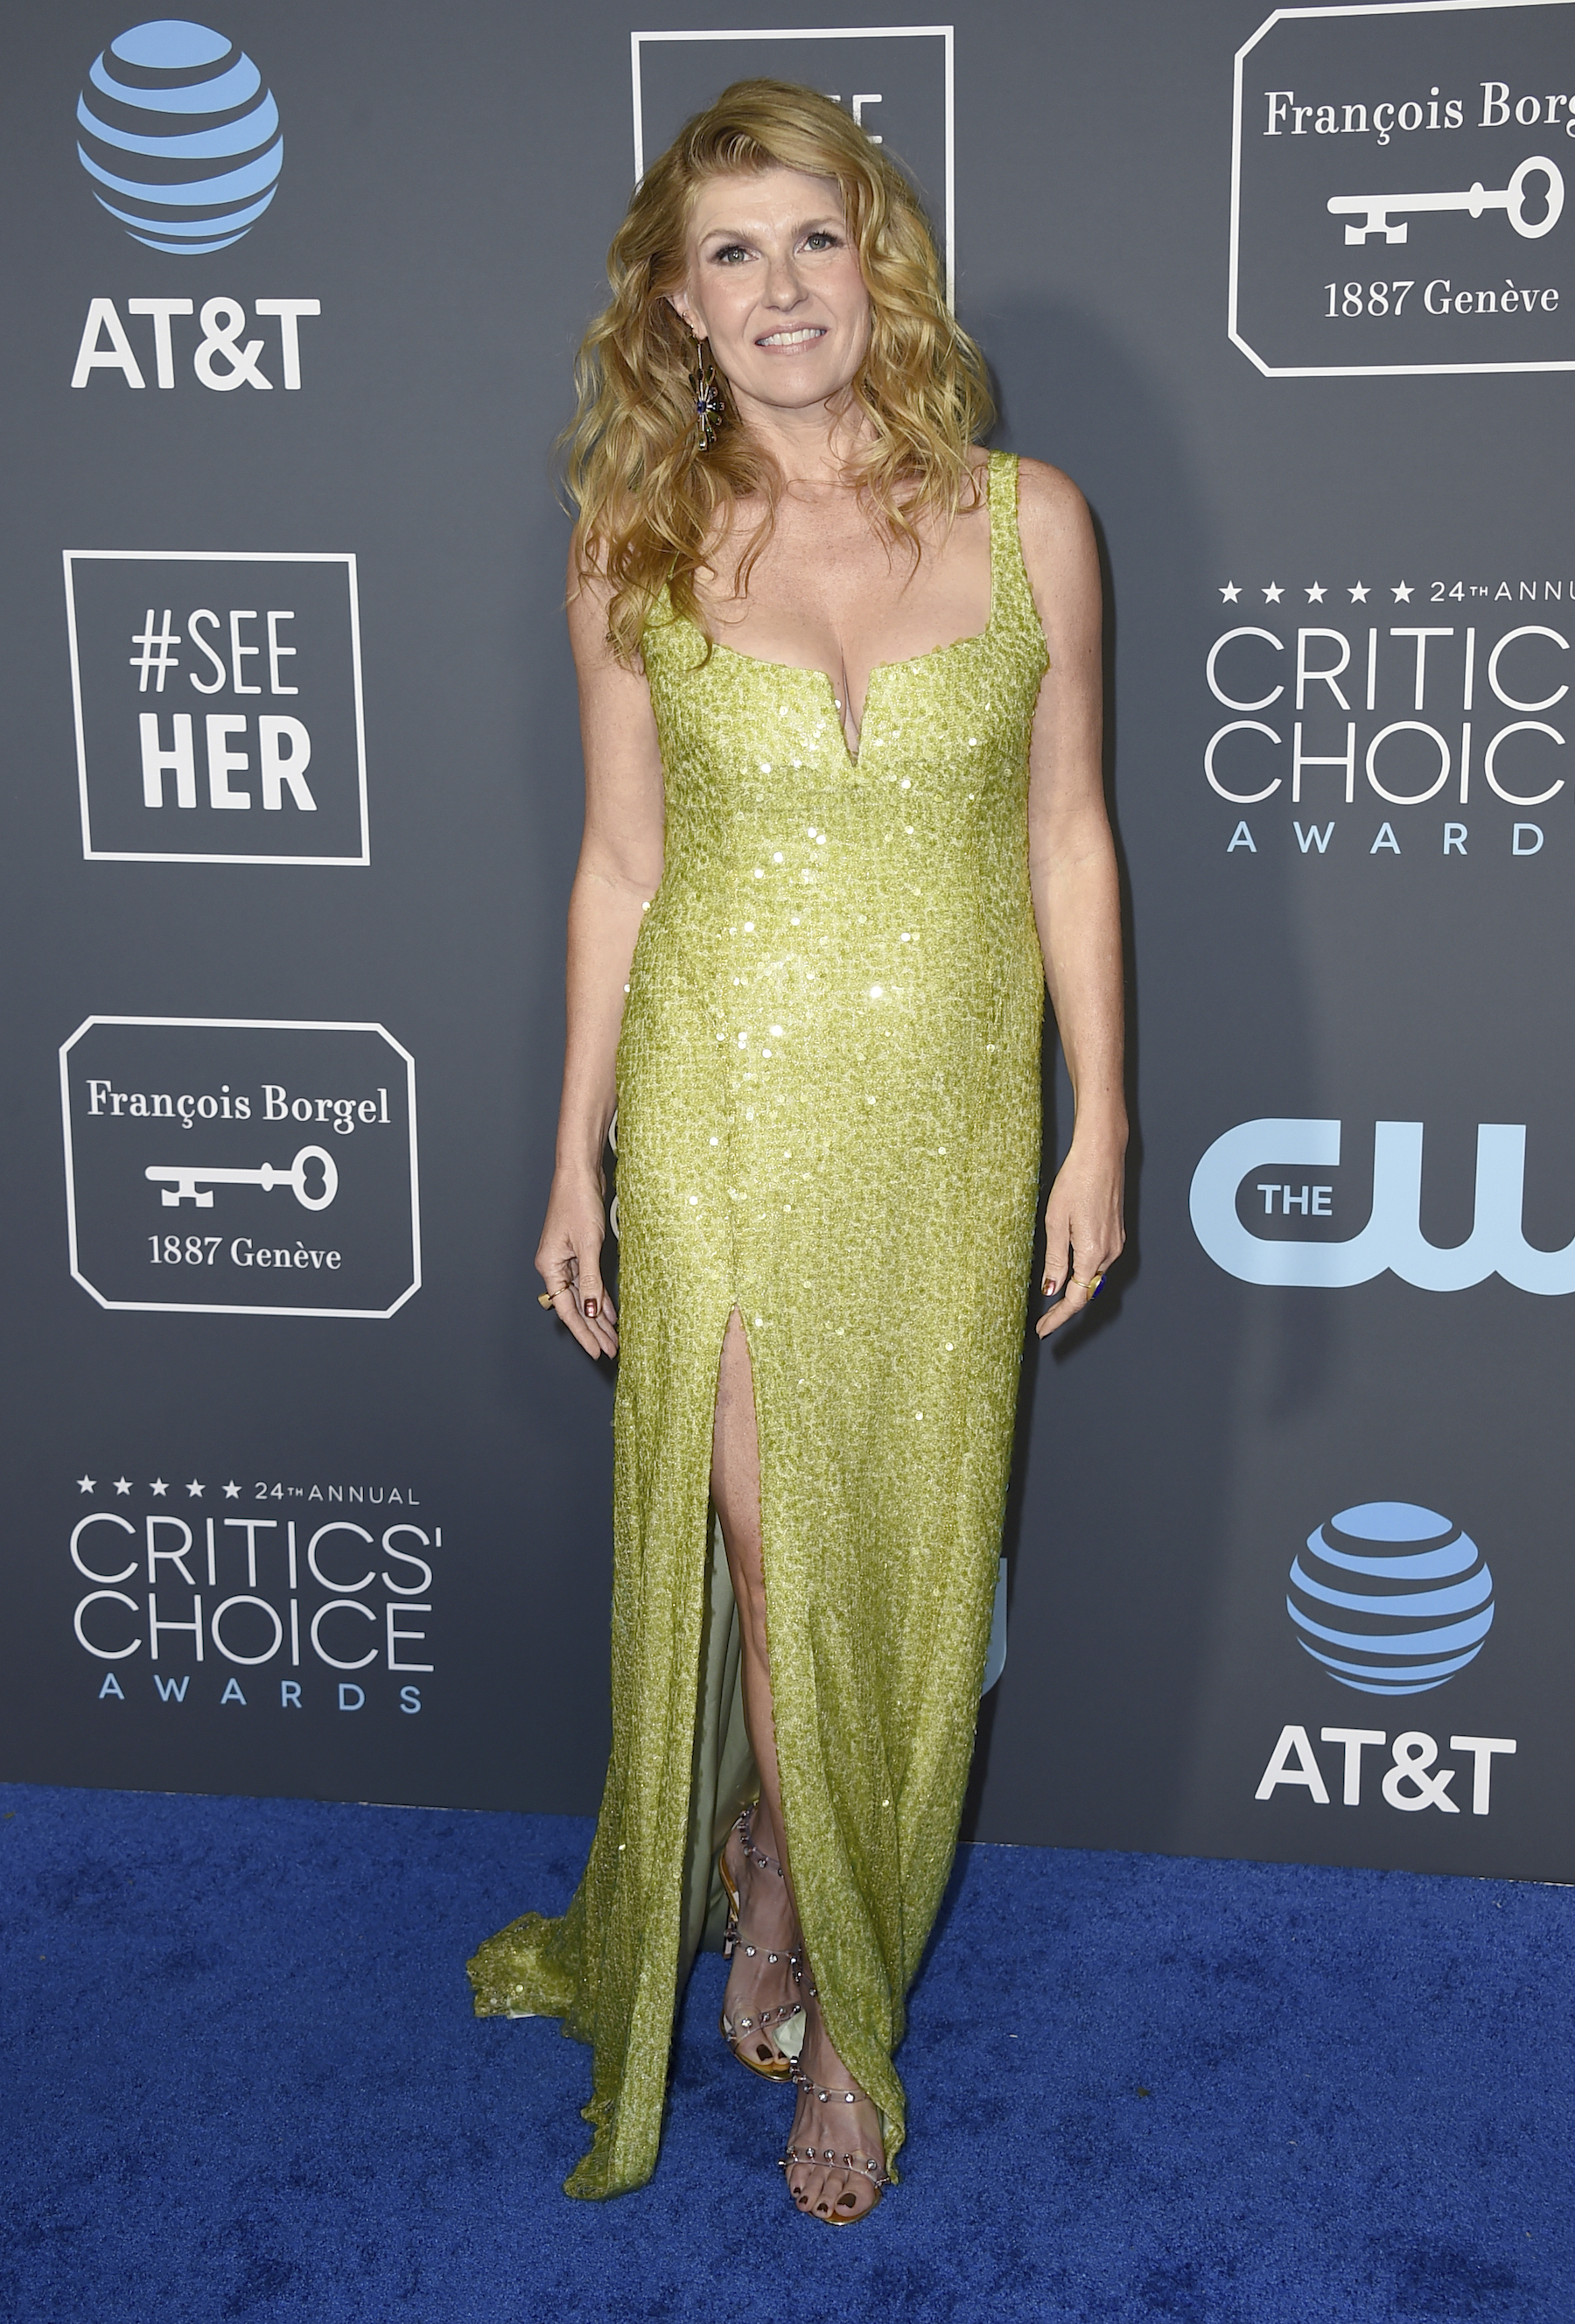 <div class='meta'><div class='origin-logo' data-origin='AP'></div><span class='caption-text' data-credit='Jordan Strauss/Invision/AP'>Connie Britton arrives at the 24th annual Critics' Choice Awards on Sunday, Jan. 13, 2019, at the Barker Hangar in Santa Monica, Calif.</span></div>